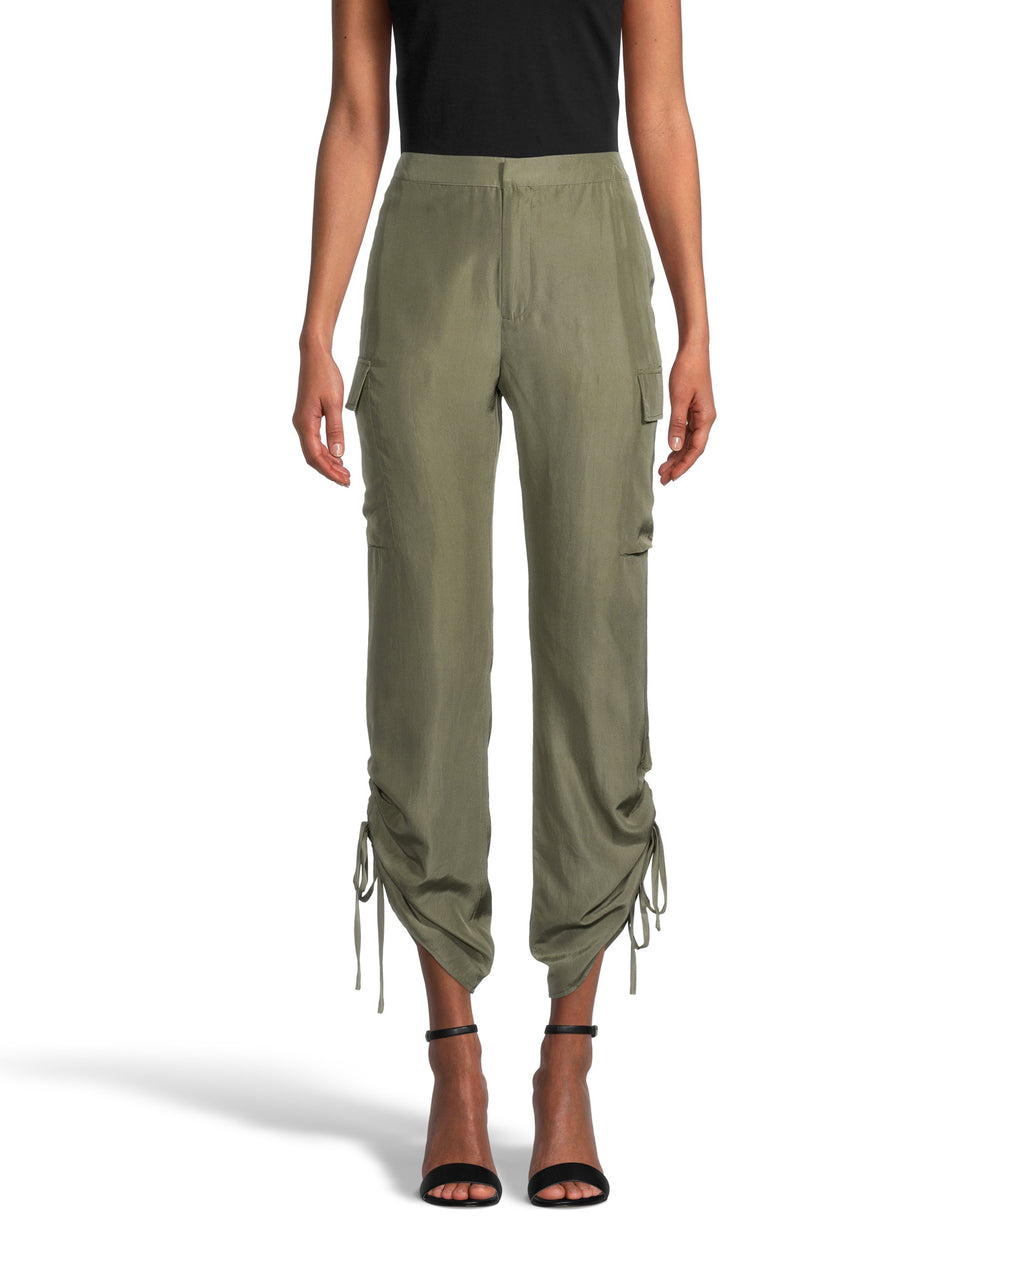 CP18680 - SOLID SILK CARGO PANT - bottoms - pants - Made from 100% silk, this silhouette gives cargo pants a feminine update. This slimming style features two pockets on the side and adjustable ruching for added detail. This best selling style is one that will be on repeat all season long. Add 1 line break Stylist Tip: Pair with the matching oversized t-shirt for a complete look.